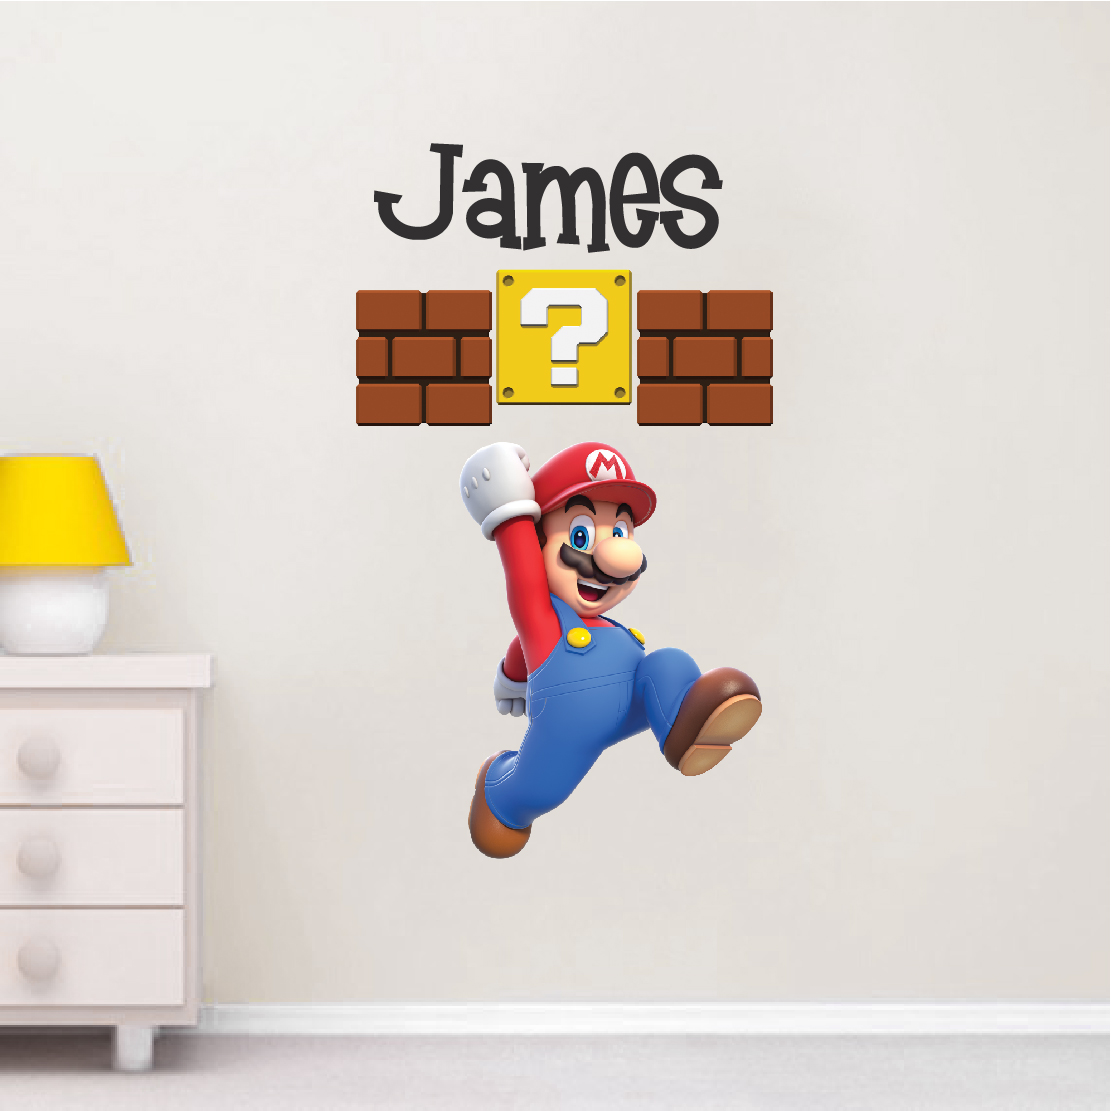 Modern Wall Sticker Mario Personalized Name Decal Super Mario Wall Decal